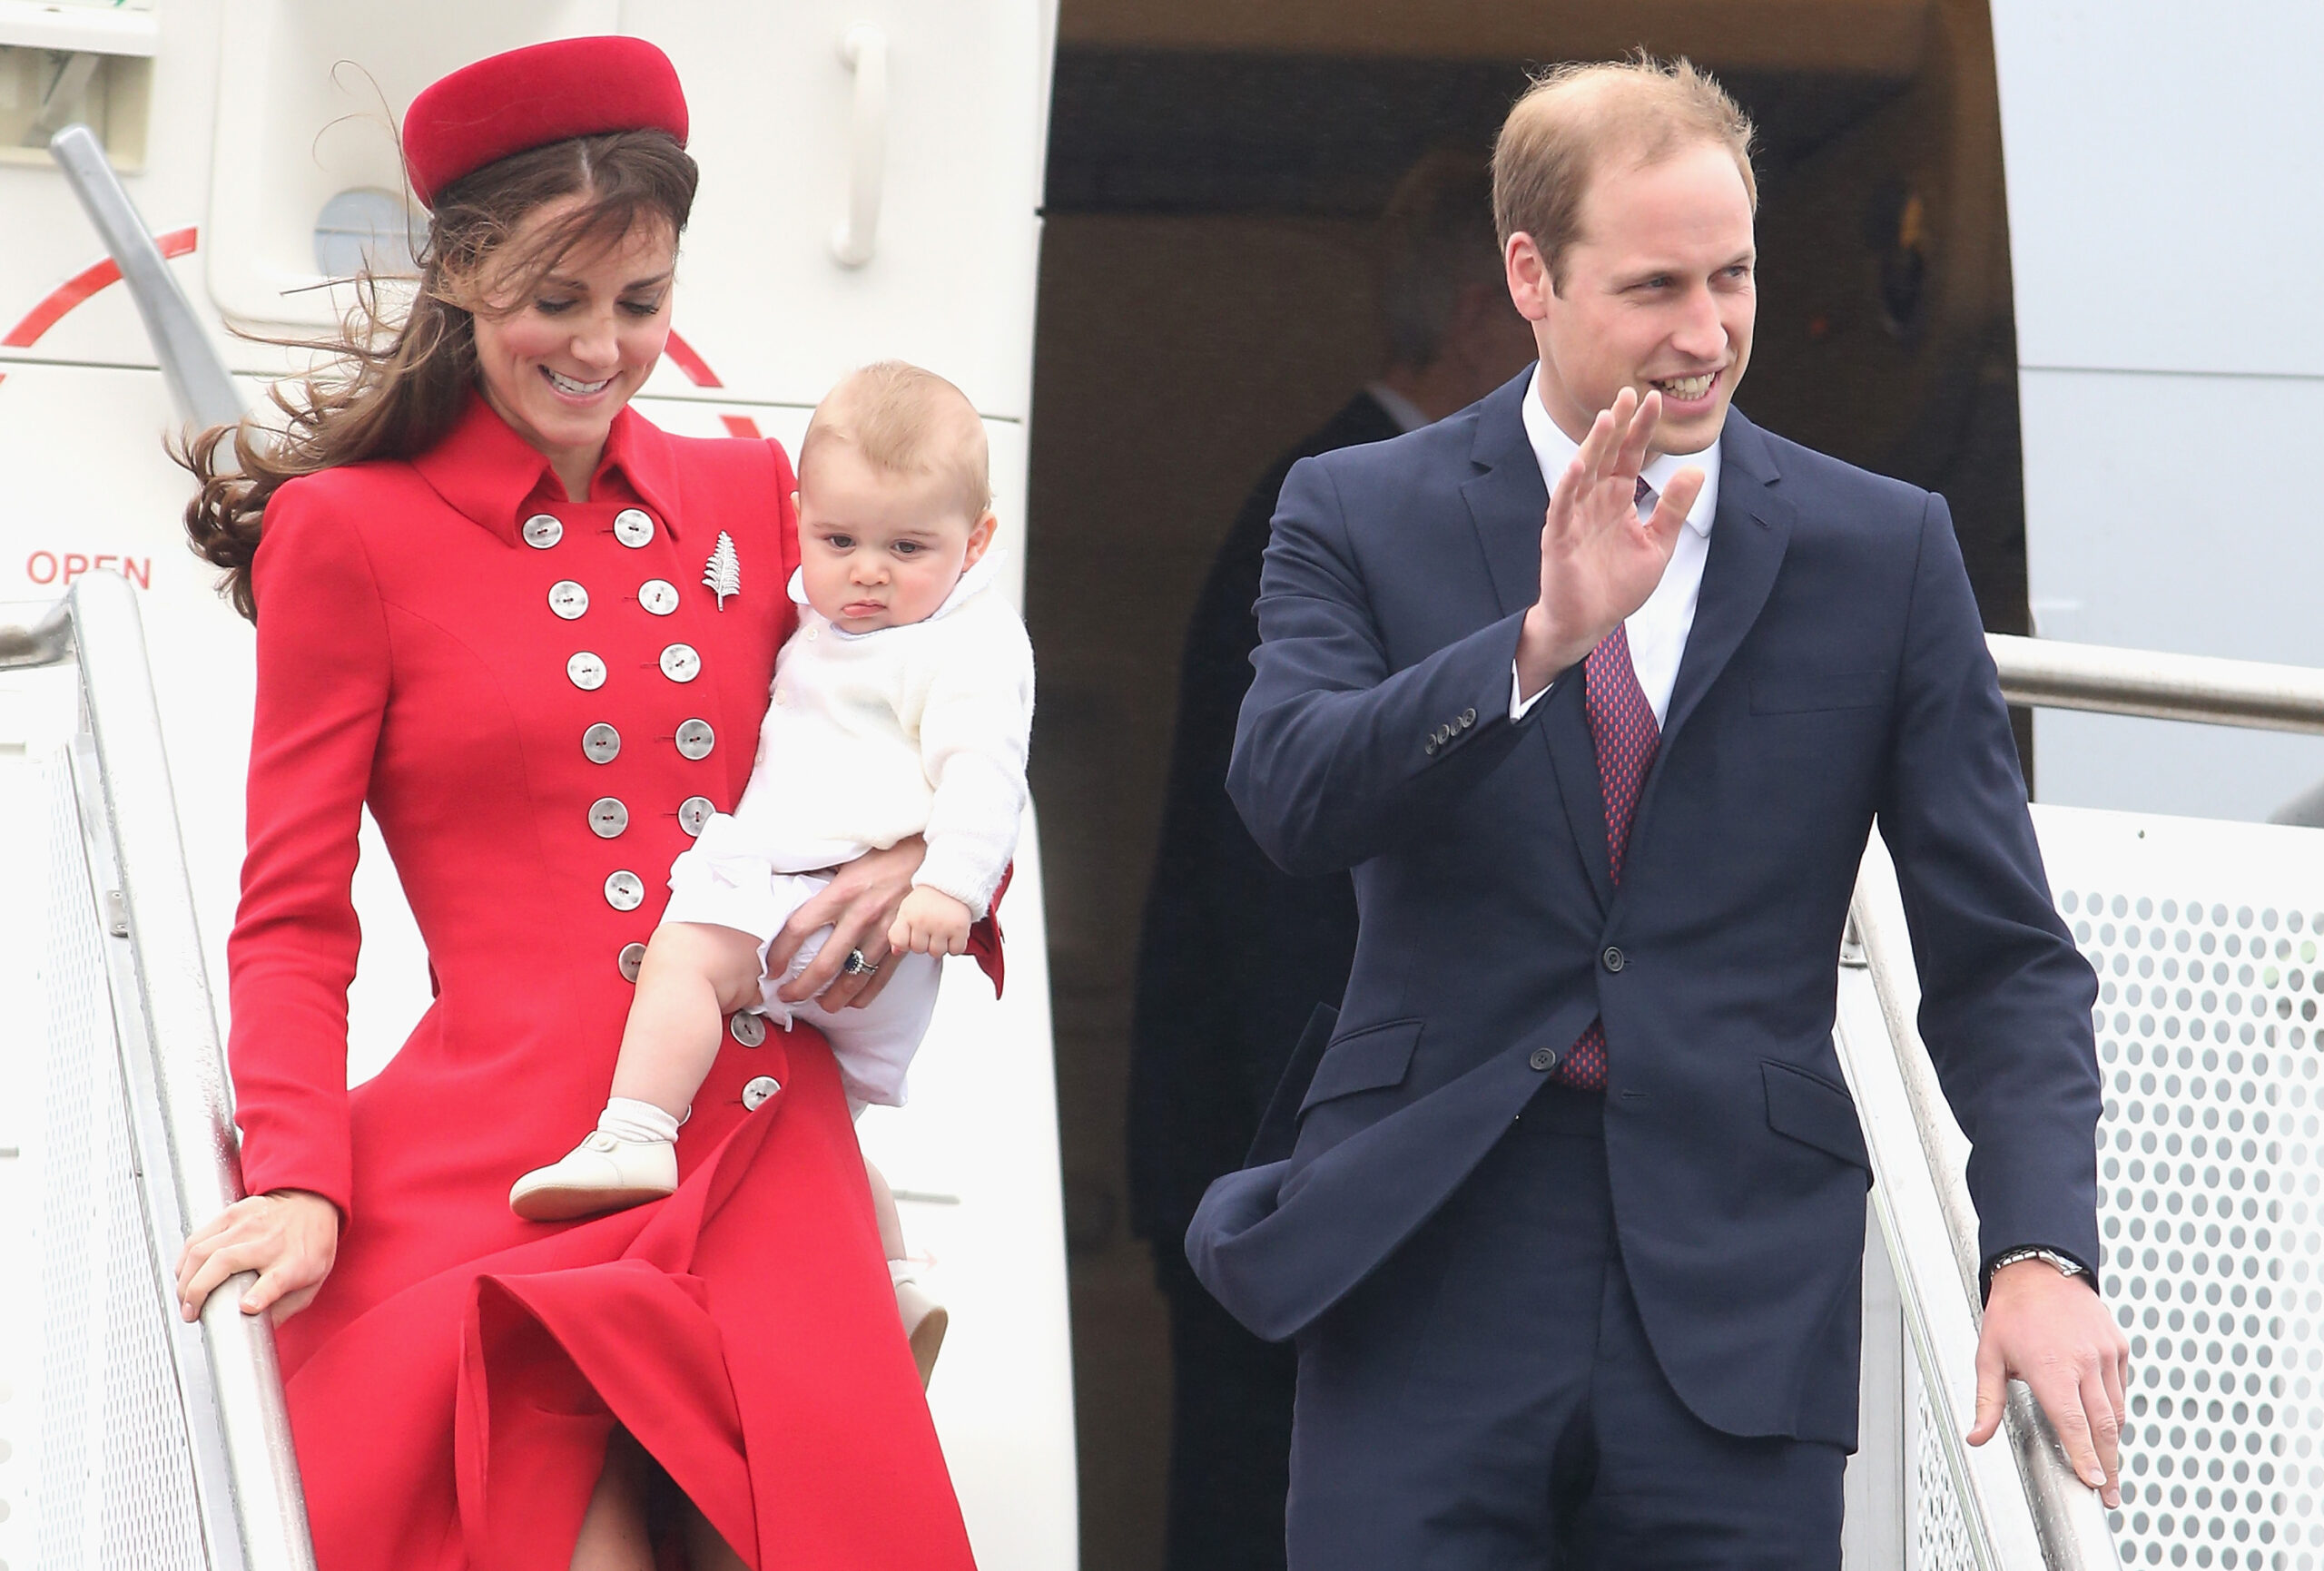 Kate Middleton Red Outfit Prince George Grumpy Face Deplane 2014 Royal Tour